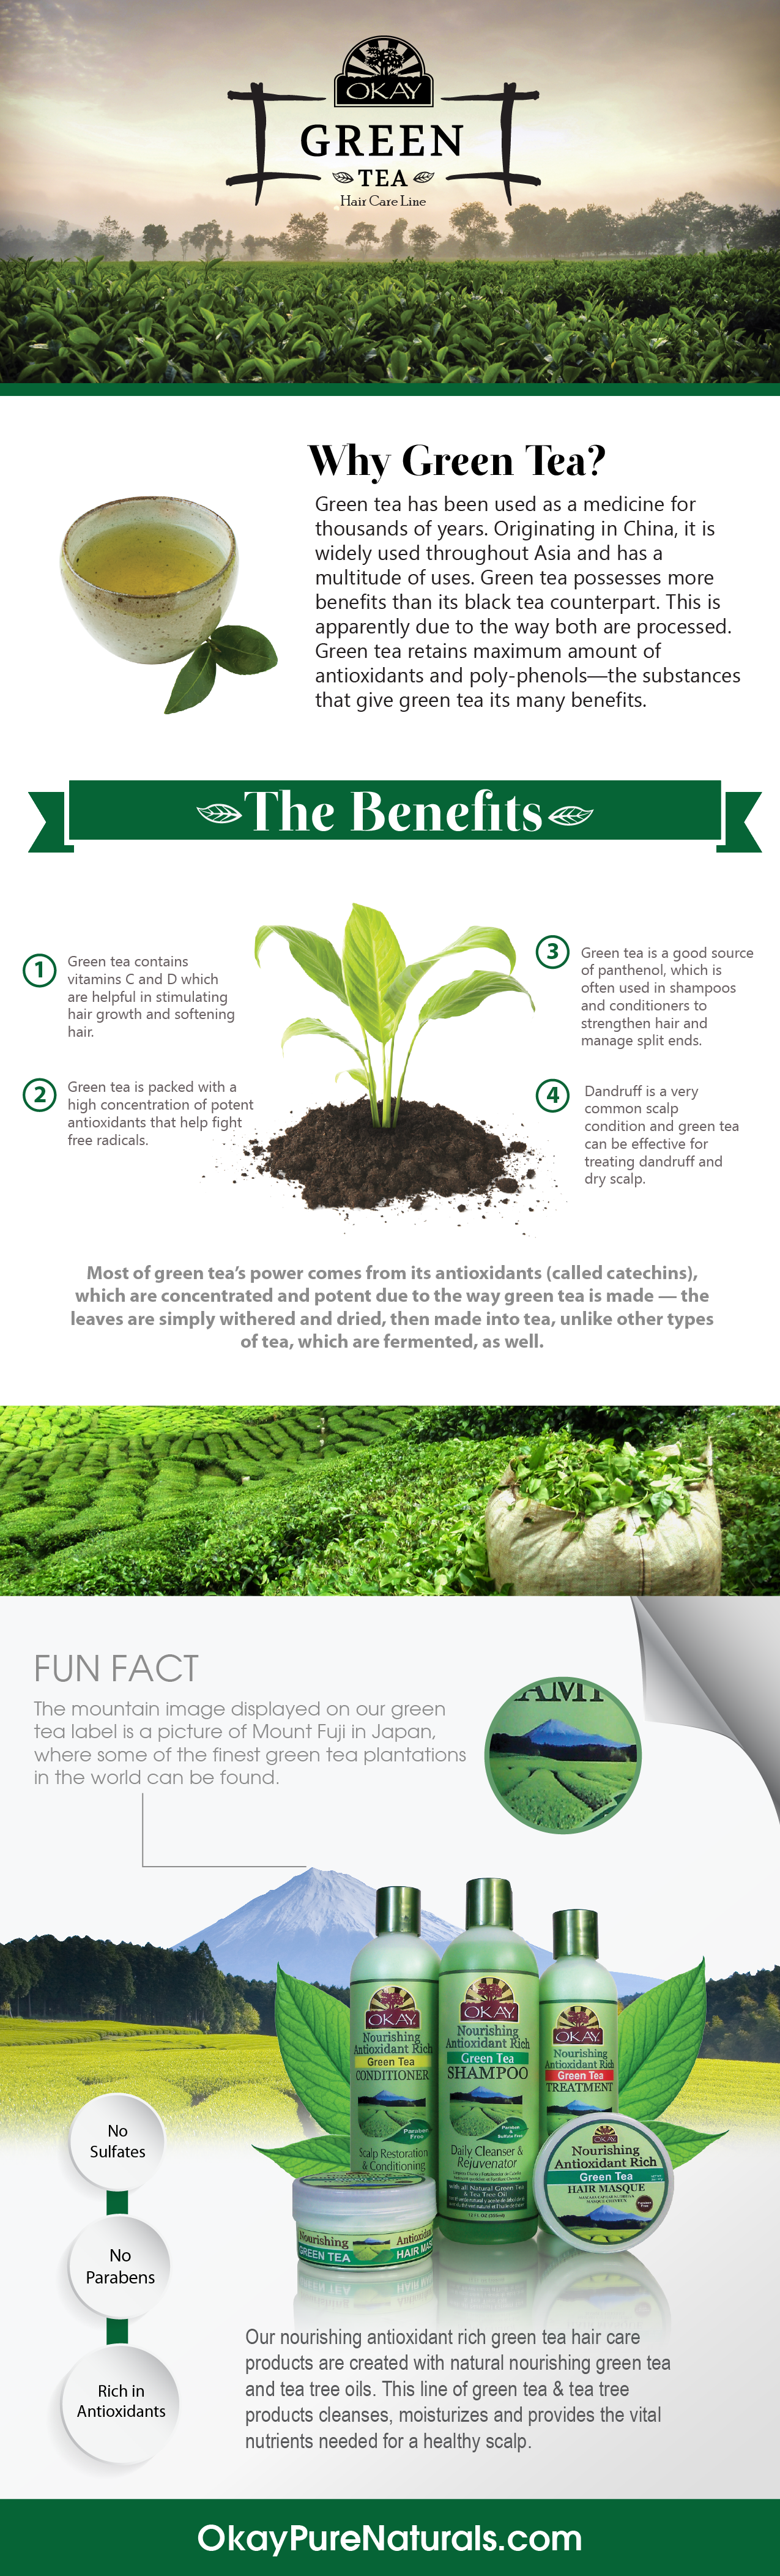 green-tea-info-graphic-02.png